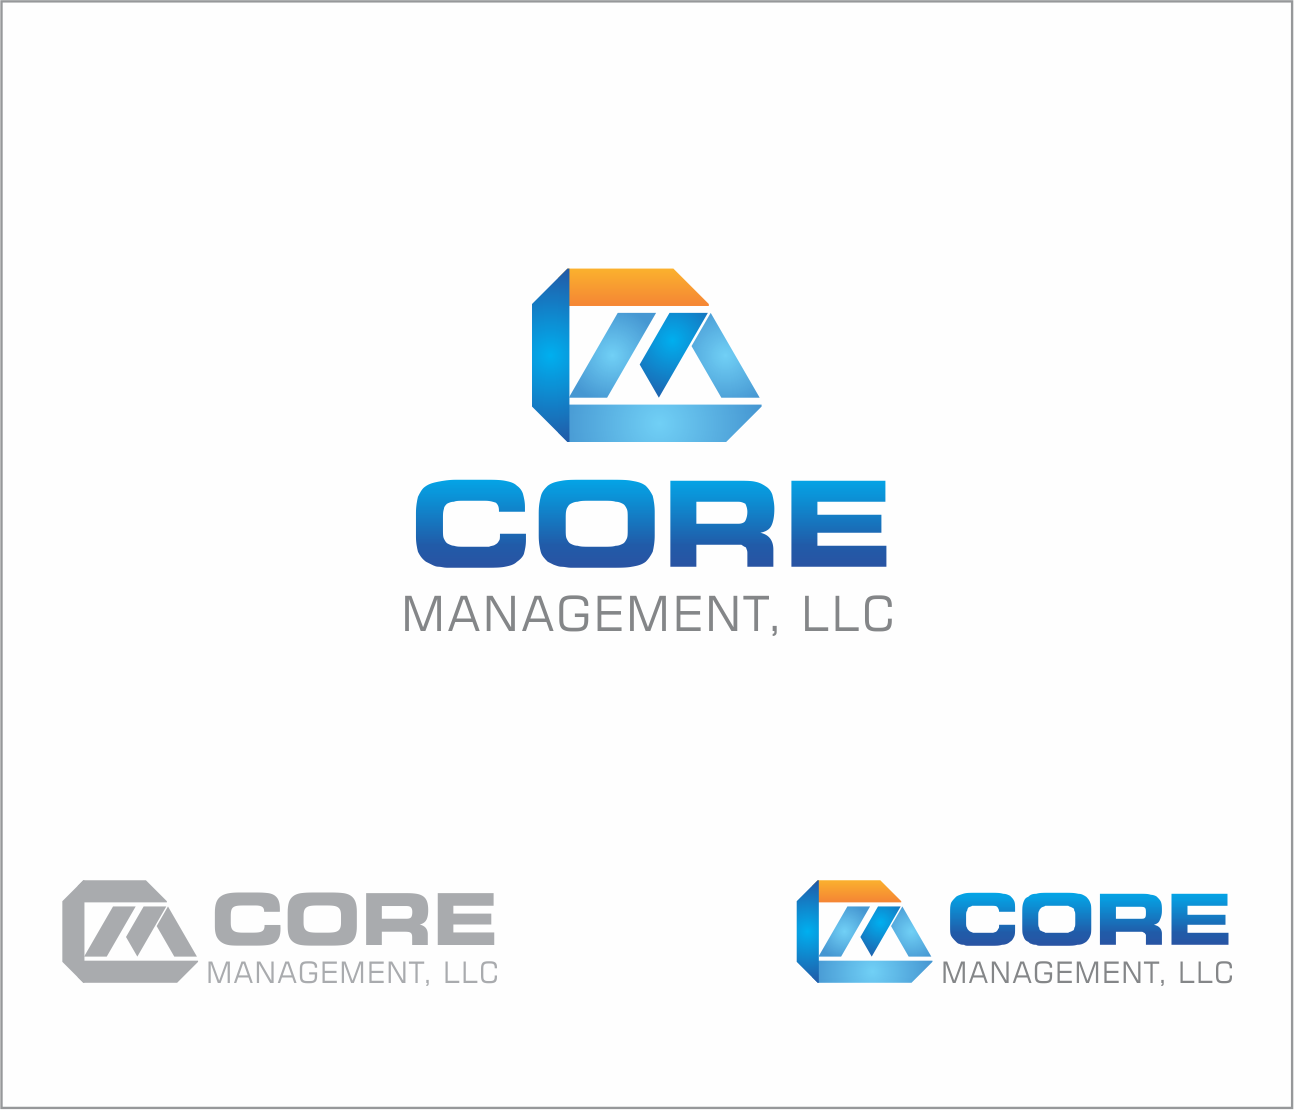 Logo Design by Armada Jamaluddin - Entry No. 204 in the Logo Design Contest Creative Logo Design for CORE Management, LLC.